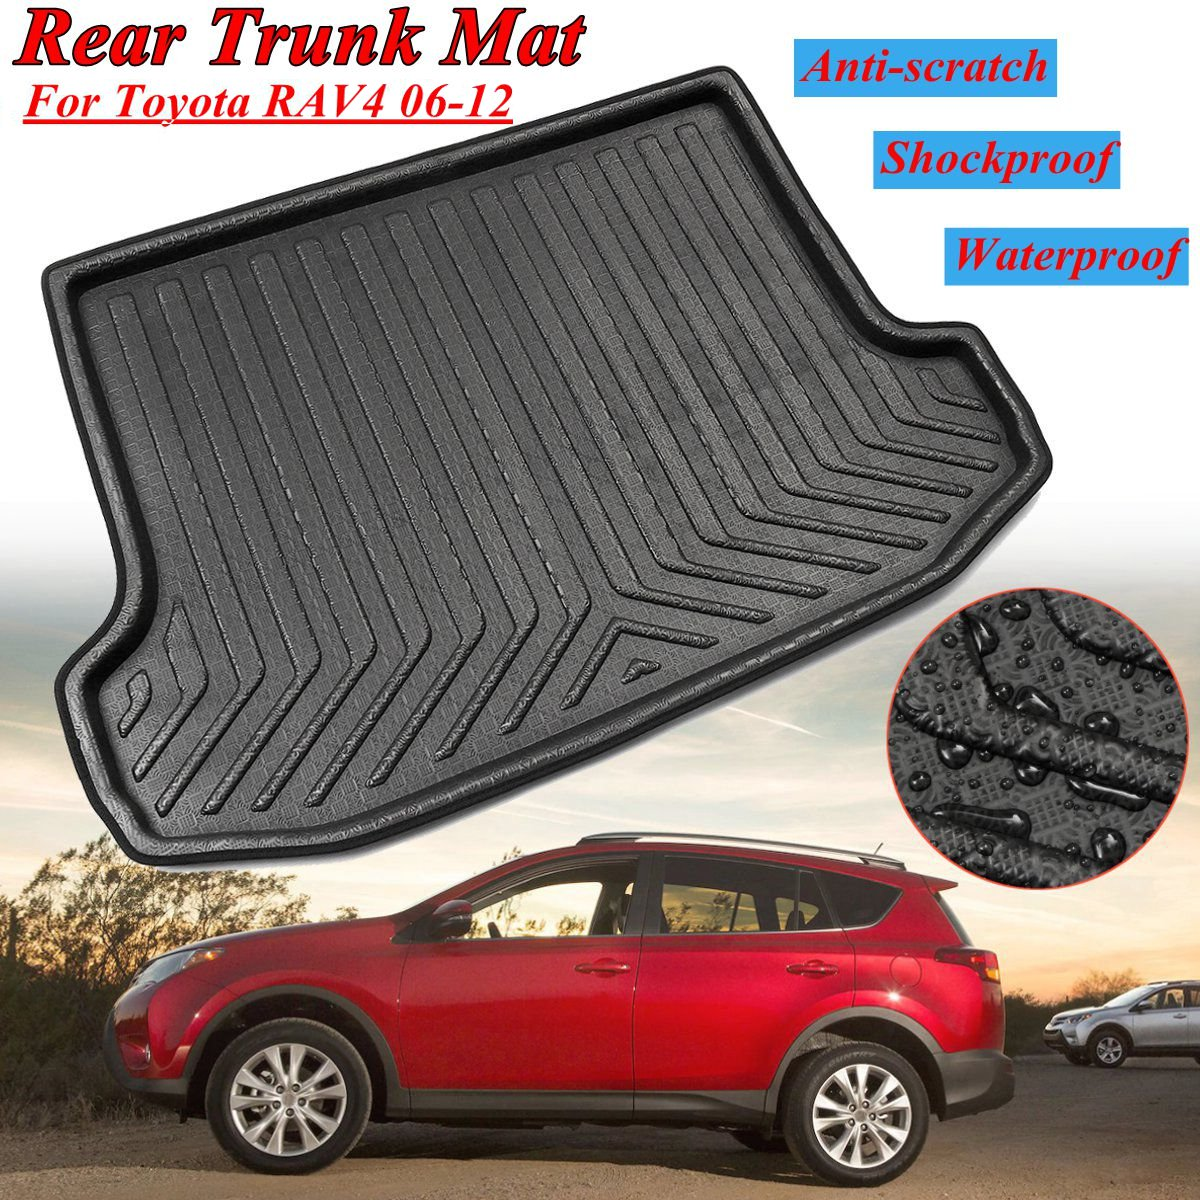 for Toyota RAV4 2006 2007 2008 2009 2010 2011 2012 High Quality Floor Mats Rear Trunk Cargo Mat Floor Tray Boot Liner Waterproof цена